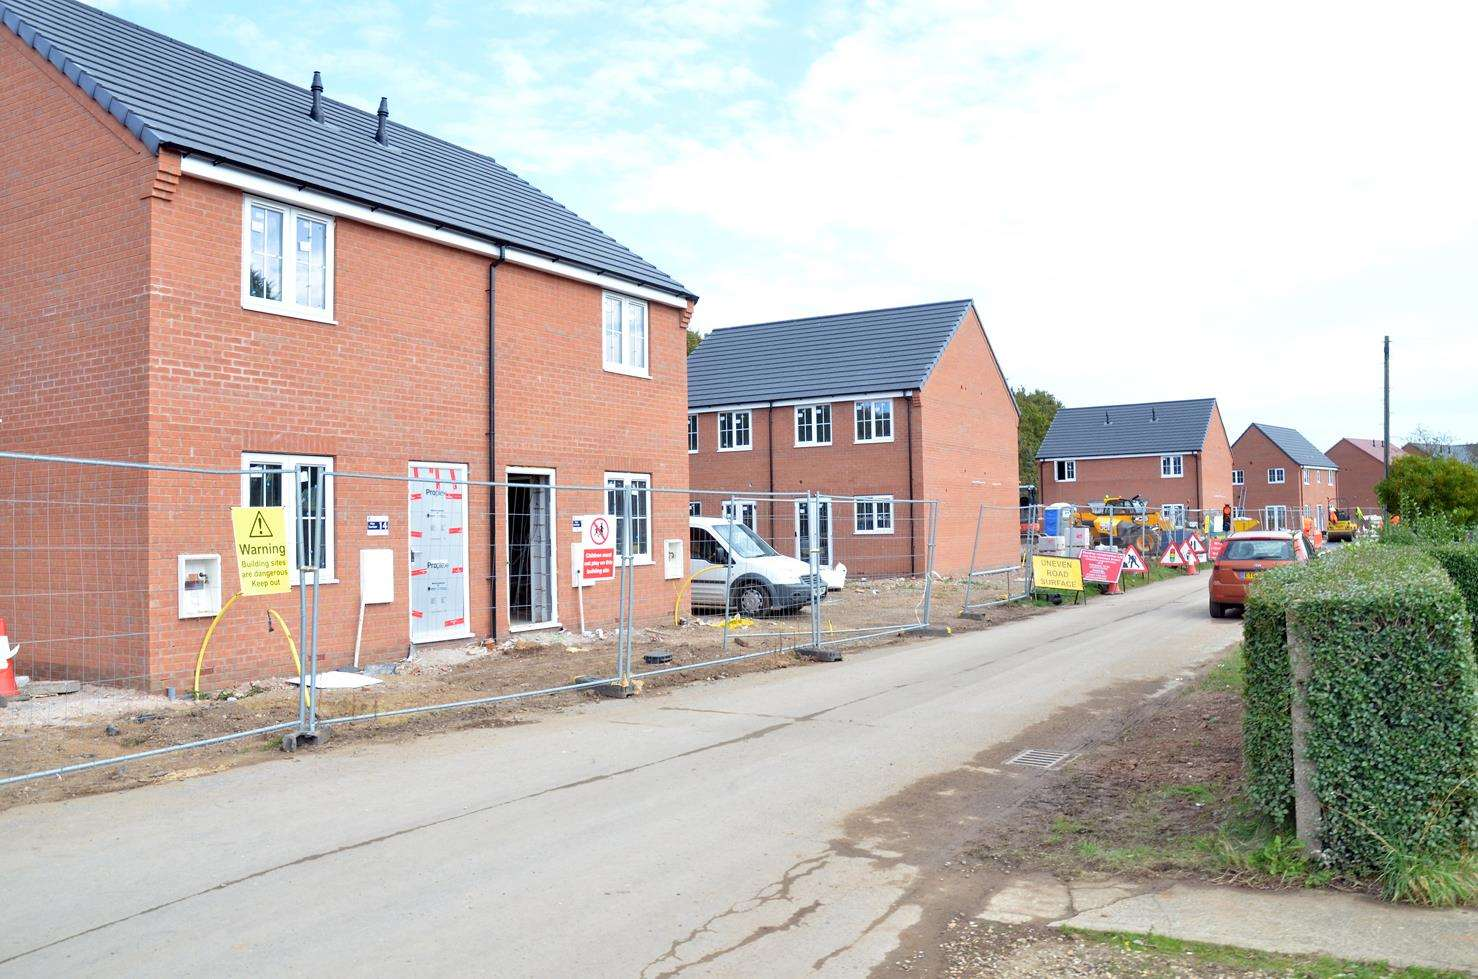 The Ashwood Homes development in Low Road, Holbeach. (4915517)